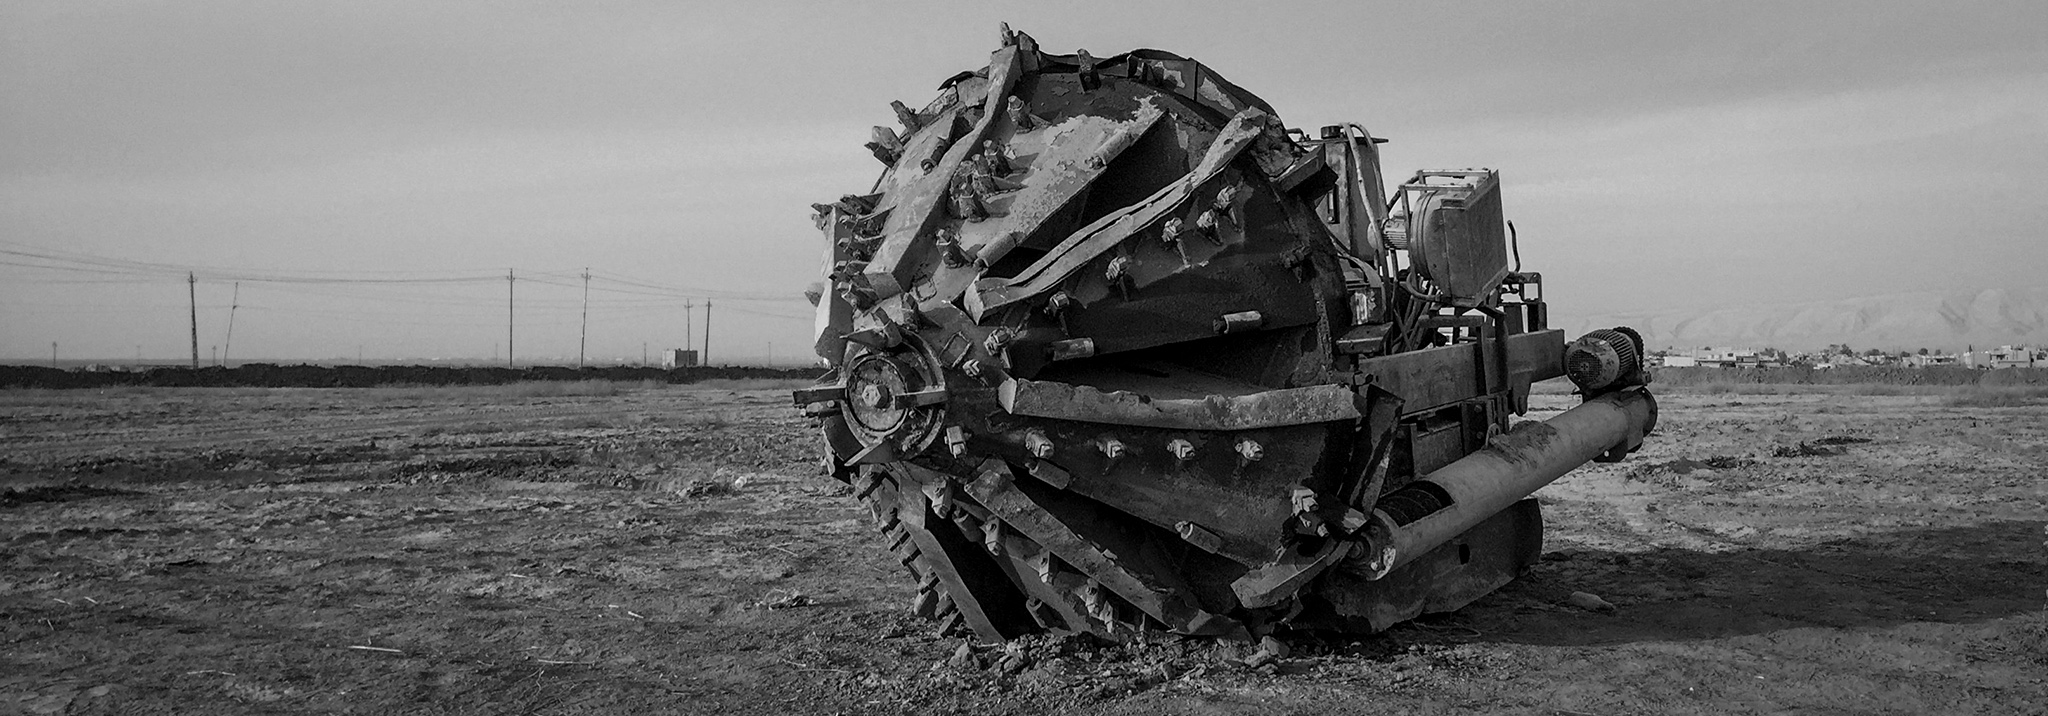 (EDITORS NOTE: Image shot in black and white using a panoramic app on an iPhone 6.) A machine used to dig ISIL tunnels is seen at the Iraqi Army Armoured Ninth Division base on November 13, 2016 in Qaraqosh, Iraq. ISIL took control of Mosul, Iraq's second largest city in June of 2014. For the past two years they have occupied the city. On the 17th of October 2016. Iraqi forces began the Mosul offensive to take back the city. The offensive was a joint effort by Iraqi Government forces, the Peshmerga, local tribal militias and air support from the US and UK military. Despite early progress the offensive has slowed in the past week as Iraqi forces encountered heavy resistance from ISIL fighters entrenched inside the city. The use of an extensive tunnel system under the city built by ISIL over the past two years, booby traps, snipers and roads riddled with IED's has slowed the advance of troops on the ground. As the offensive enters its fourth week, fears of a humanitarian crisis grow as up to 1 million civilians are believed to be trapped inside the city.  (Photo by Chris McGrath/Getty Images)